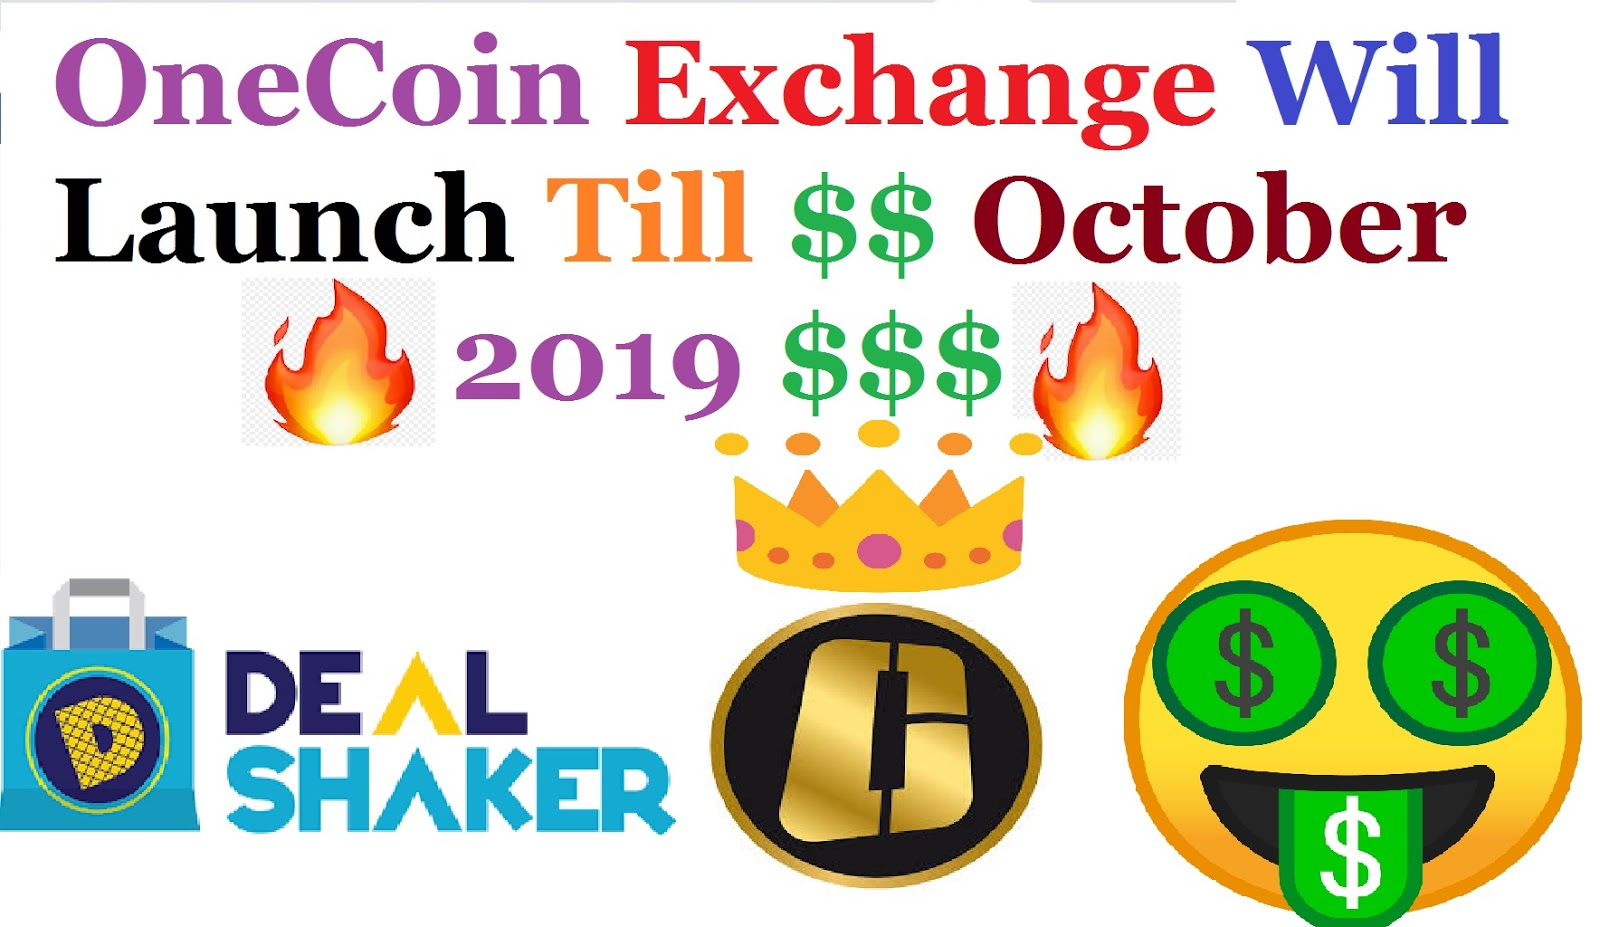 OneCoin Exchange Will Launch Till $$ October 2019